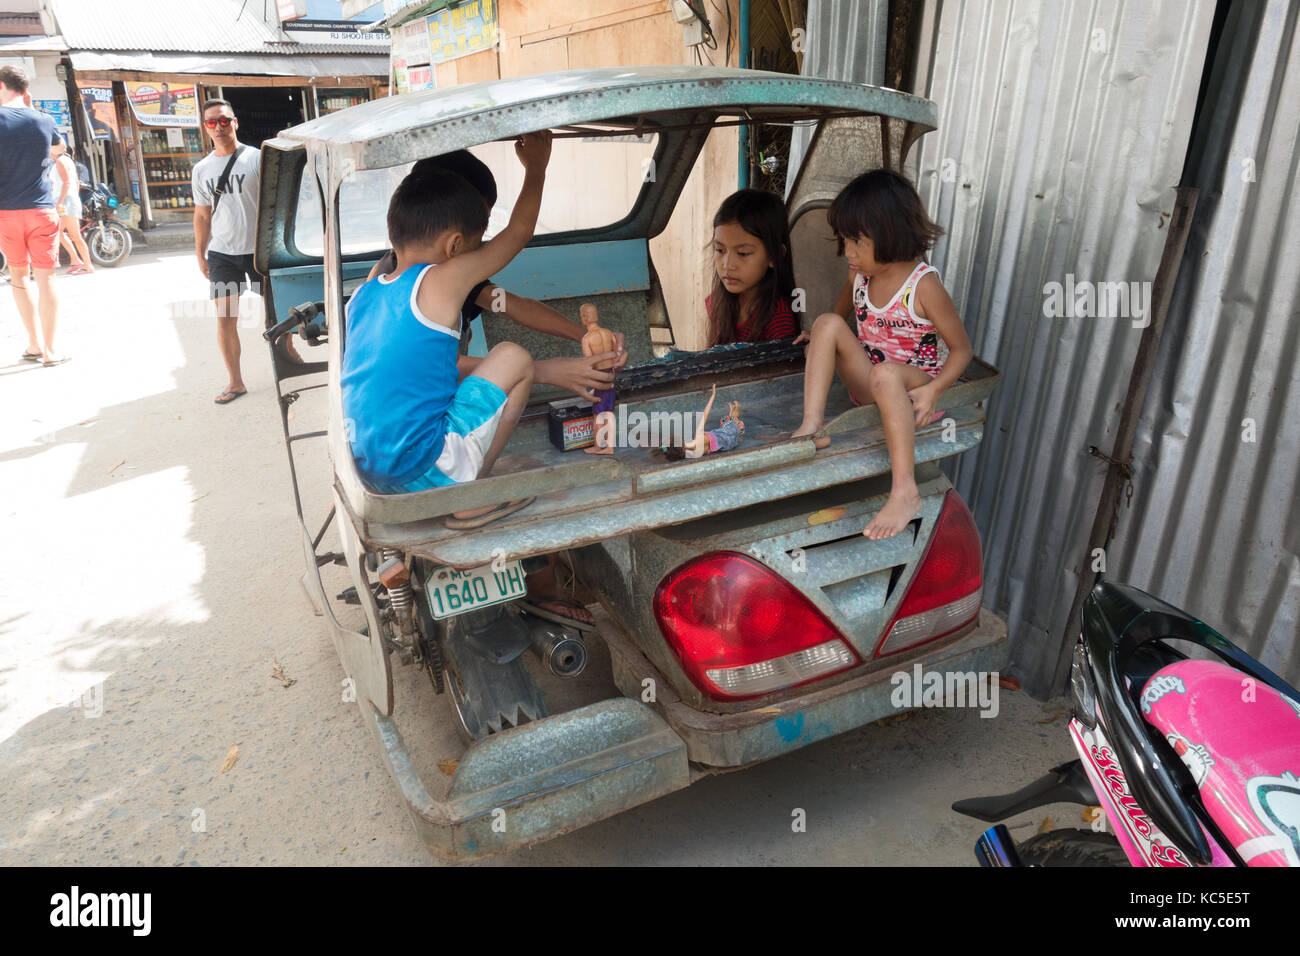 Philippines children playing with dolls  in the back of a taxi, Cebu city, Cebu, Philippines - Stock Image